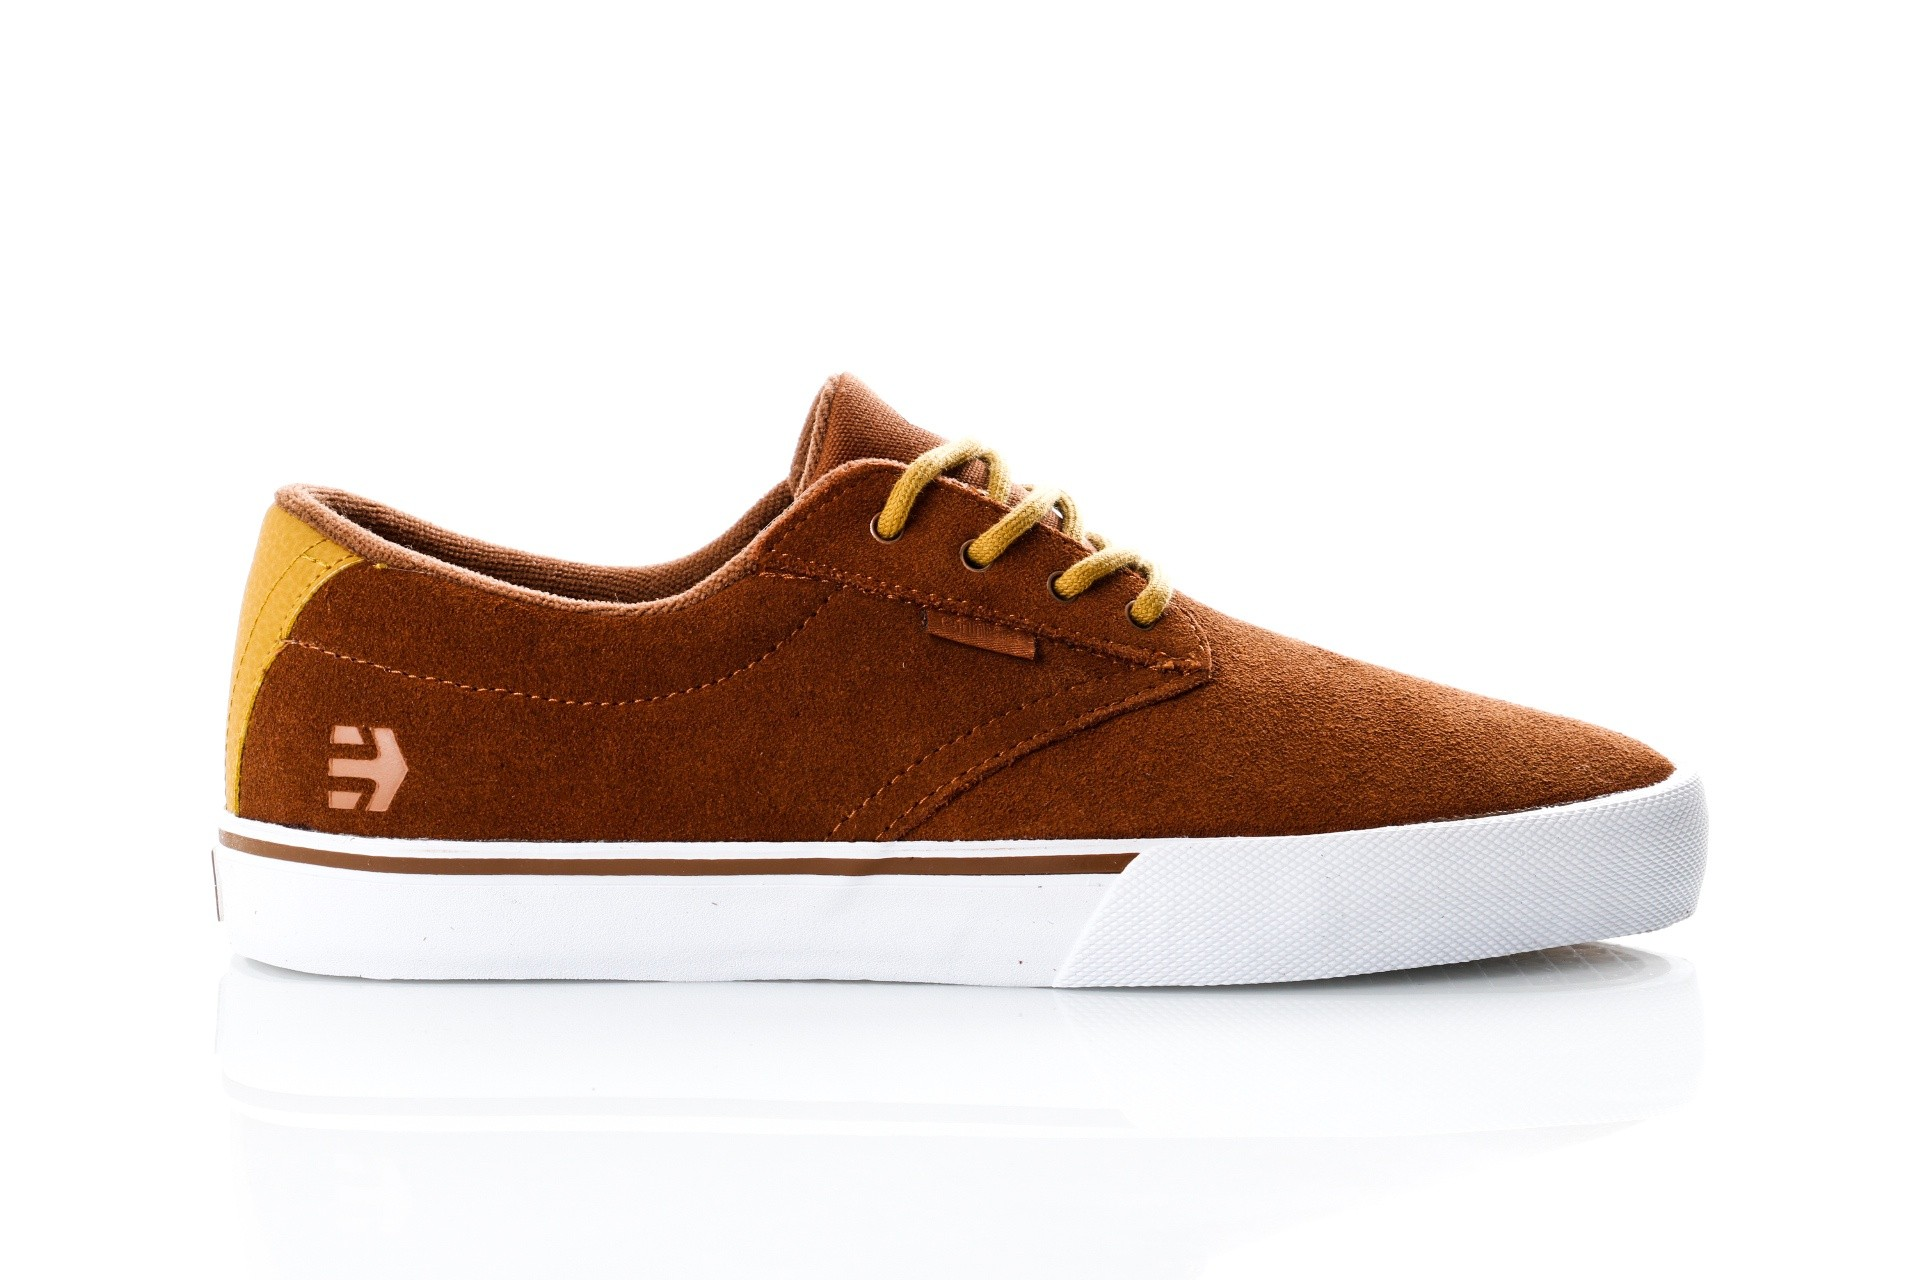 Foto van Etnies JAMESON VULC 4101000449 Sneakers BROWN/TAN